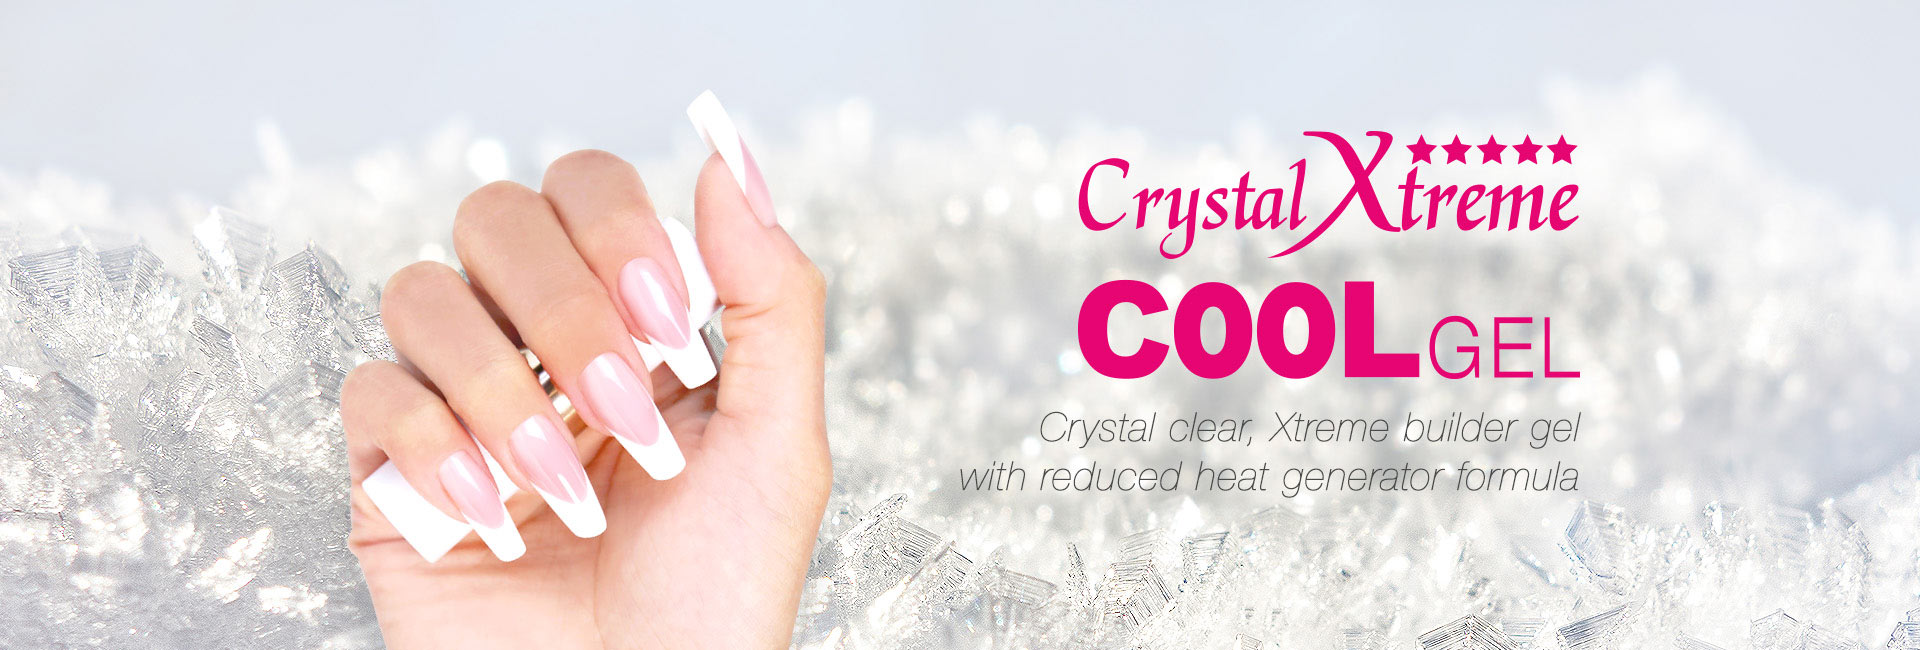 Crystal Xtreme COOL gel - Crystal clear, Xtreme builder gel with reduced heat generator formula